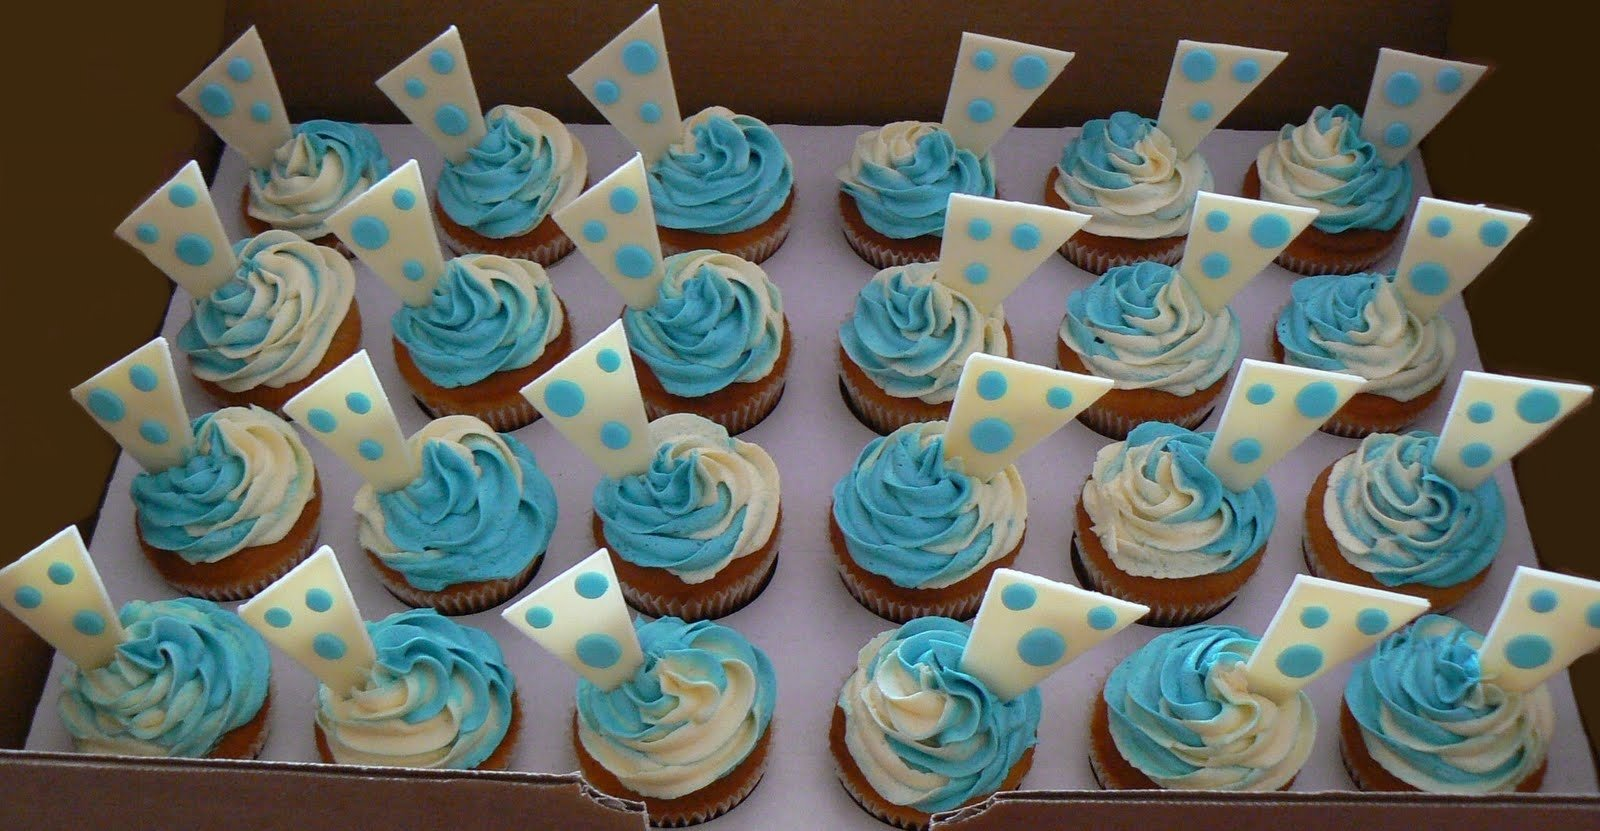 10 Great Baby Shower Cake Ideas For Boy ideas for baby shower cakes or cupcakes omega center ideas 1 2020